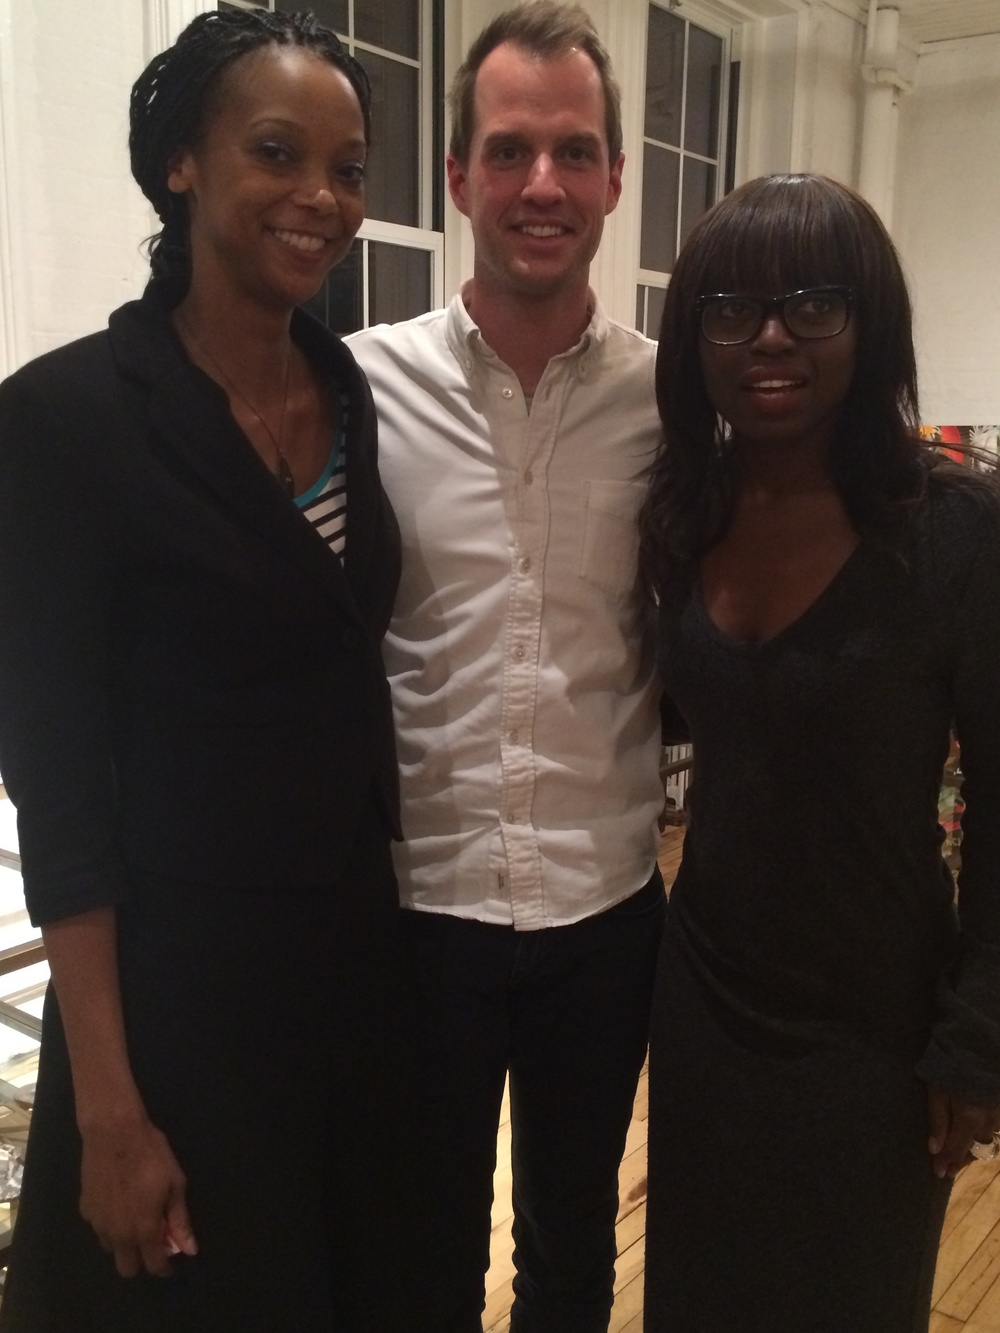 With Philippe Von Borries of refinery29 and Dee Poku-Spaulding of WIE Network.